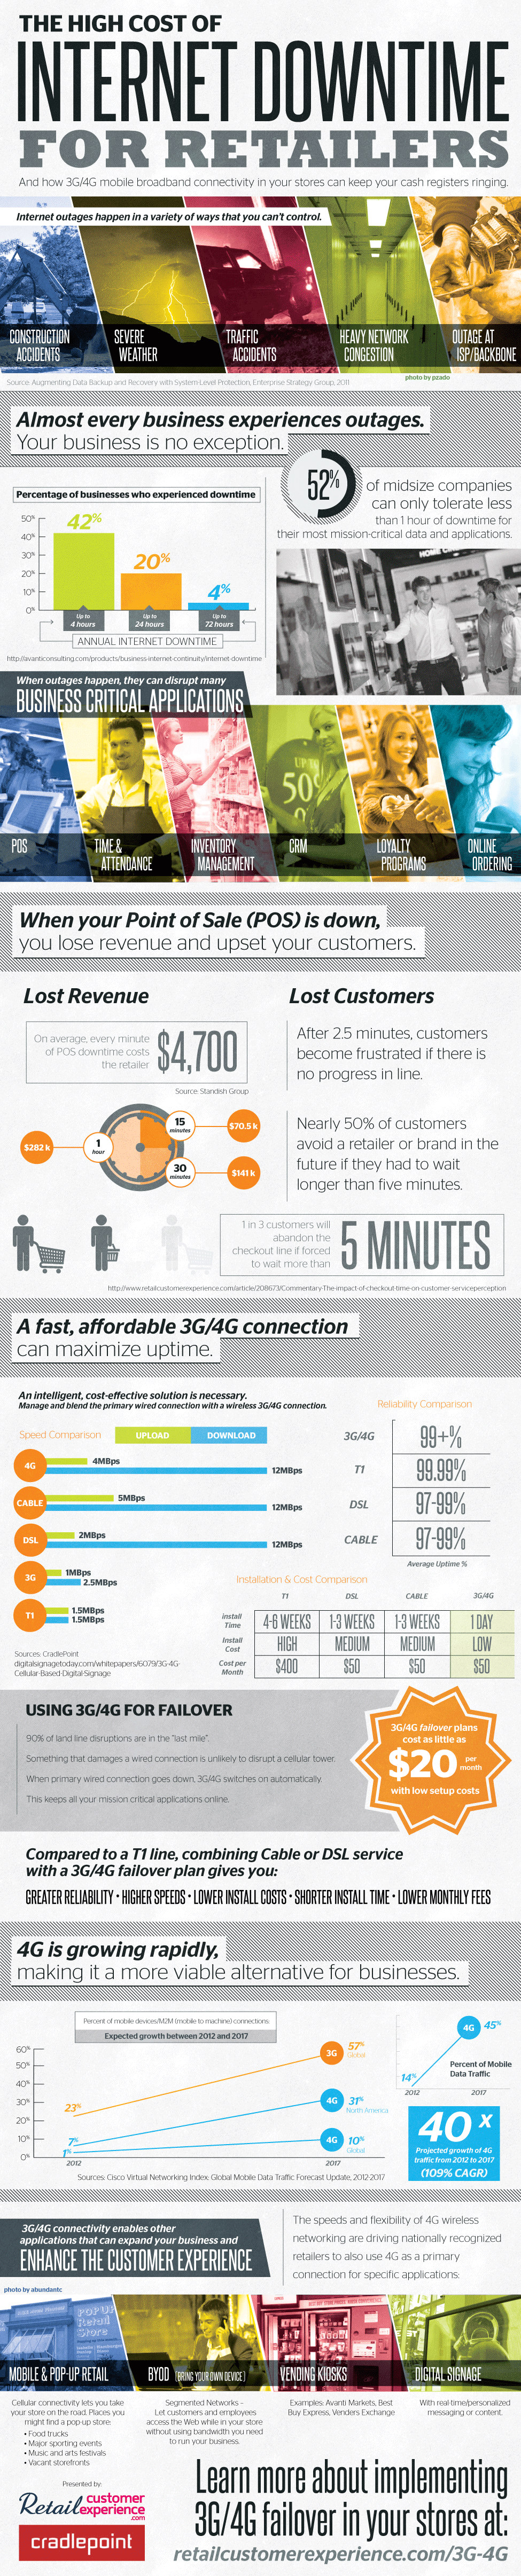 The High Cost of Internet Downtime for Retailers